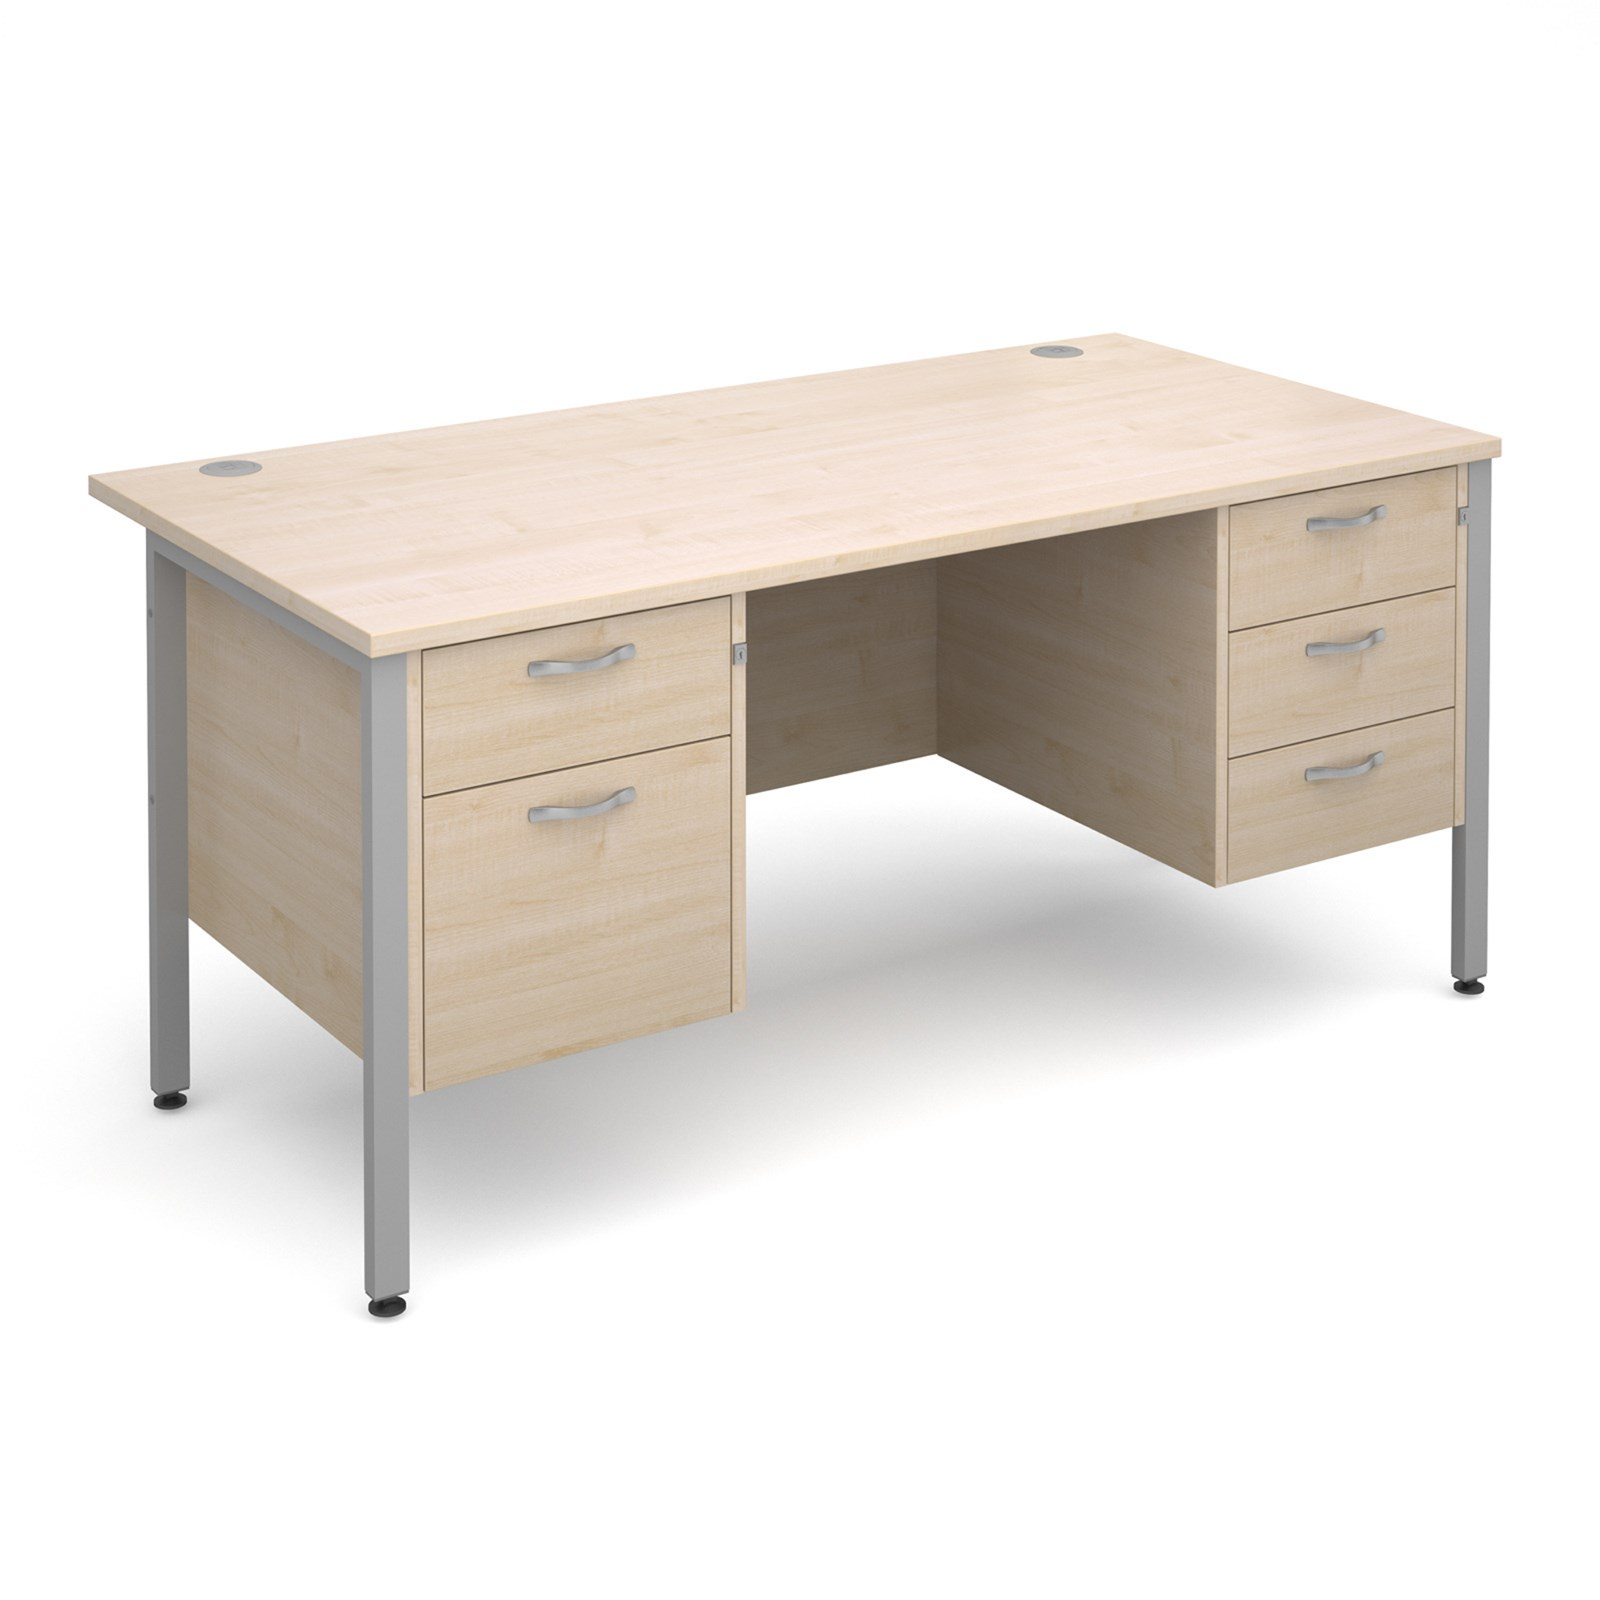 Straight Desk with 2 and 3 Drawer Pedestals - Maple